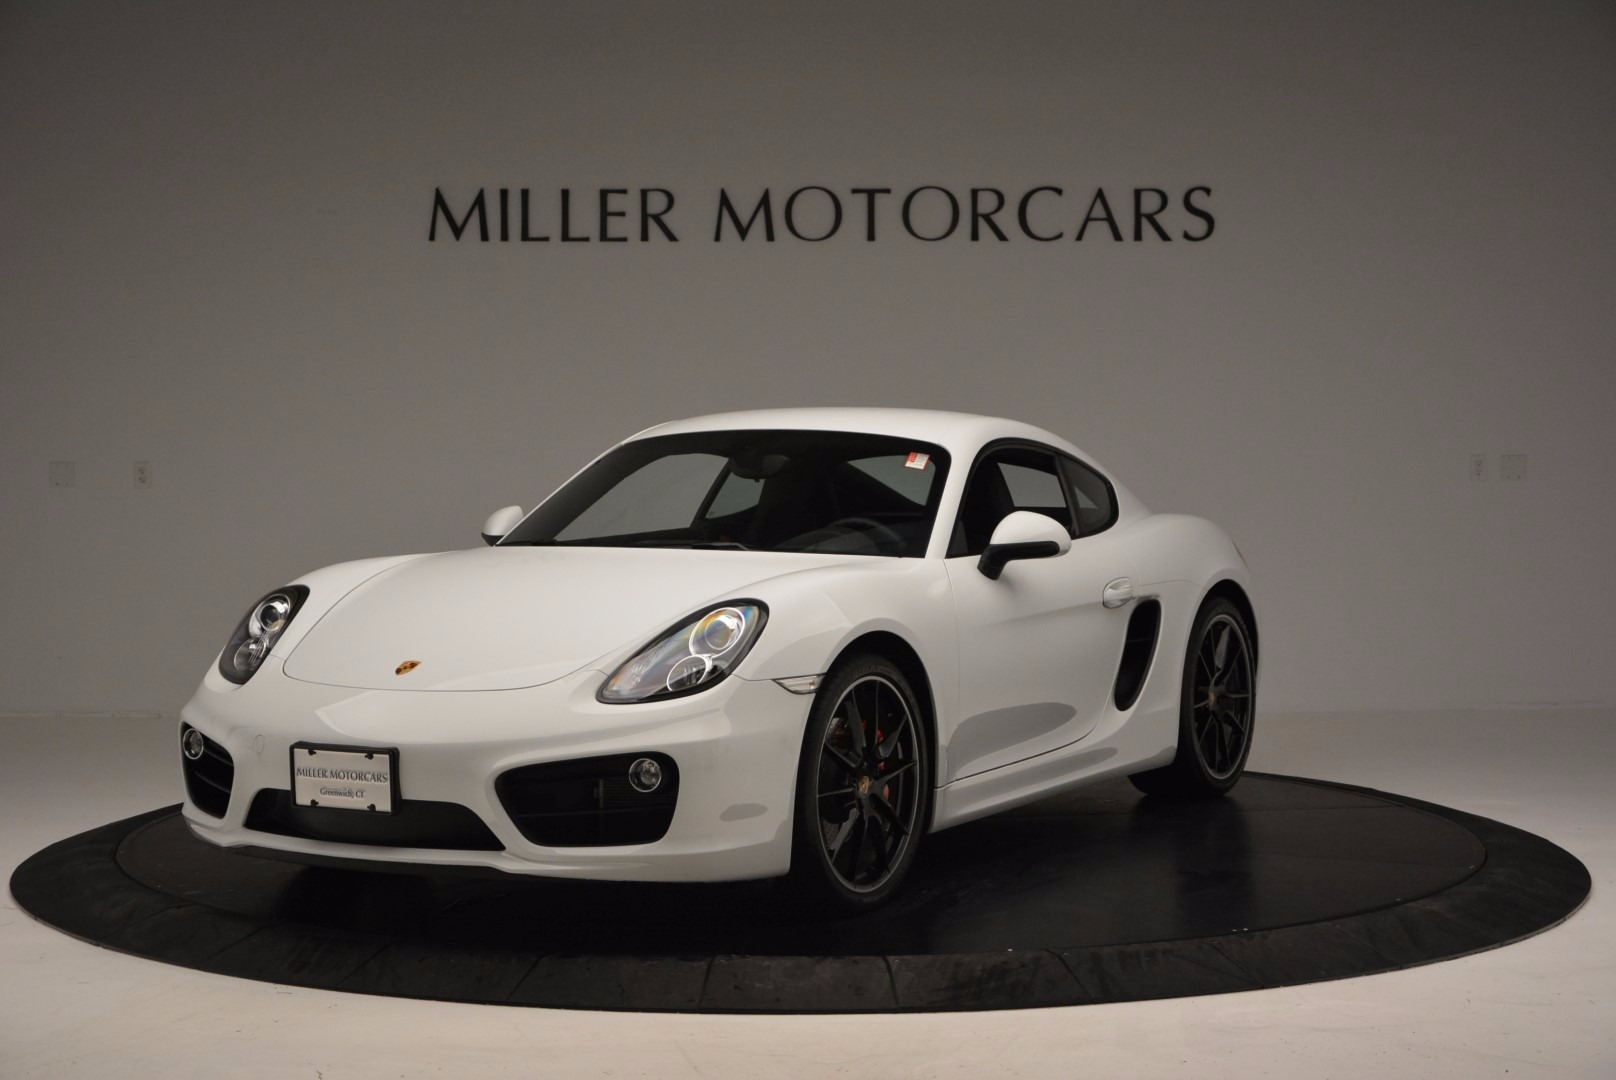 2014 porsche cayman s stock mc264a for sale near greenwich, ctused 2014 porsche cayman s greenwich, ct